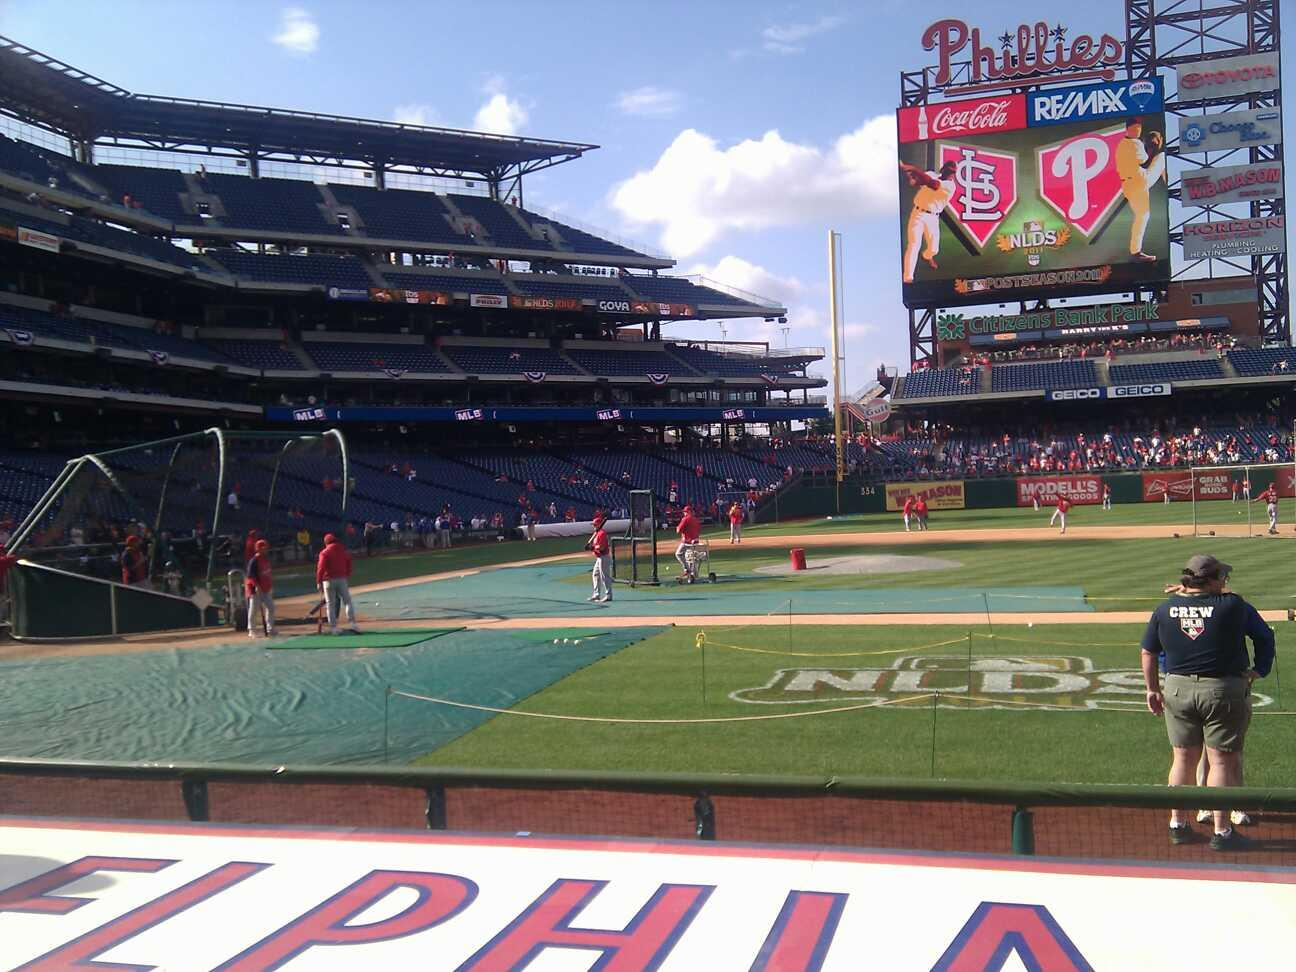 Citizens Bank Park Section 117 Row 3 Seat 6